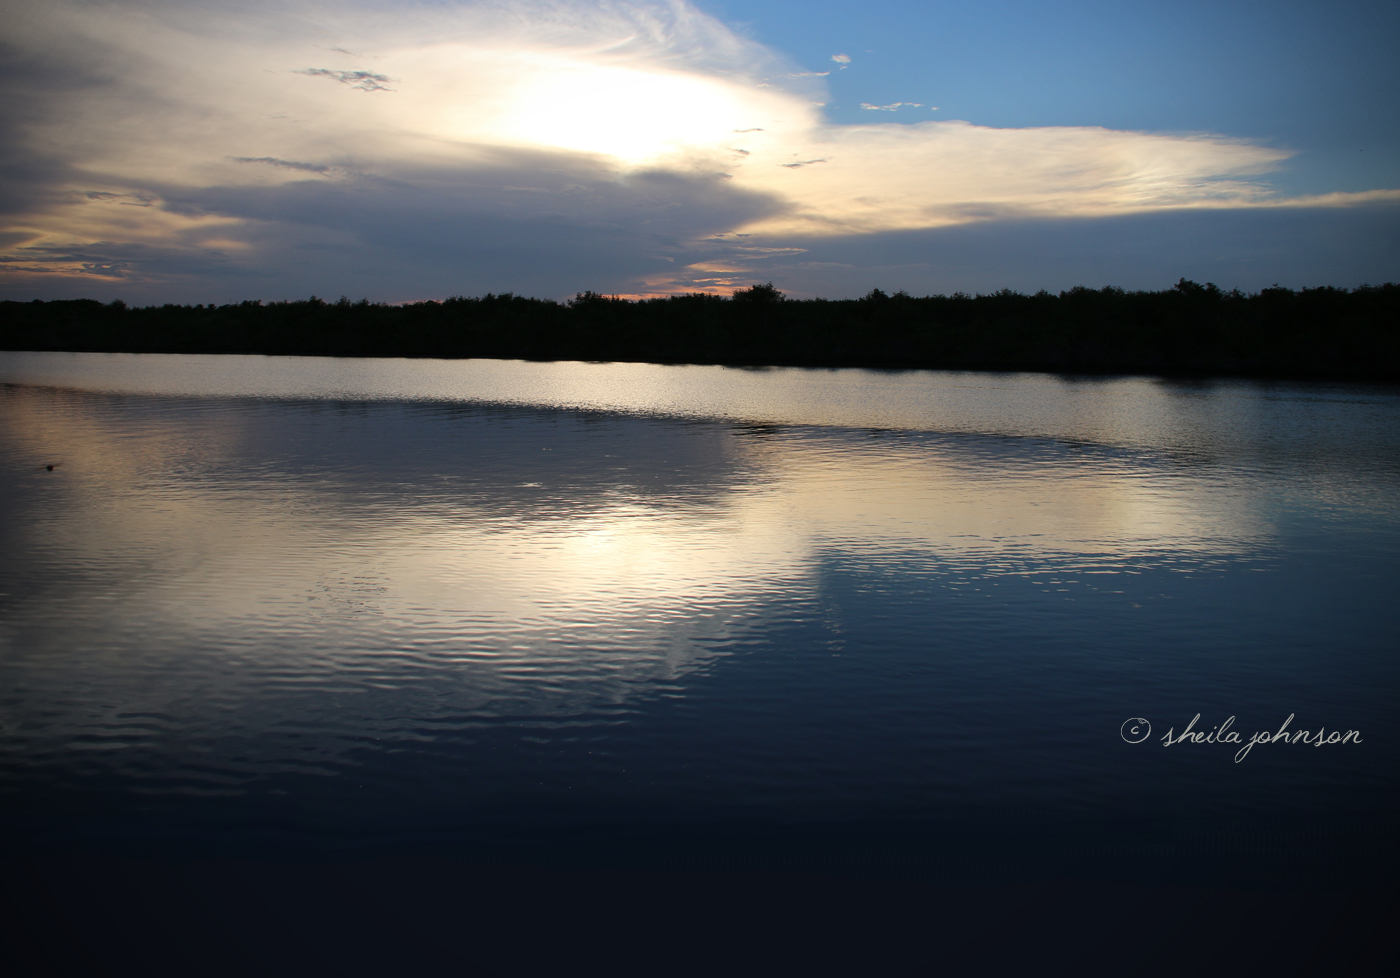 We *love* How The Reflection Of The Cloud Makes A Heart In The Water In This Image Taken Overlooking The St. Lucie River At Kiplinger Preserve, Stuart, Martin County, Florida.